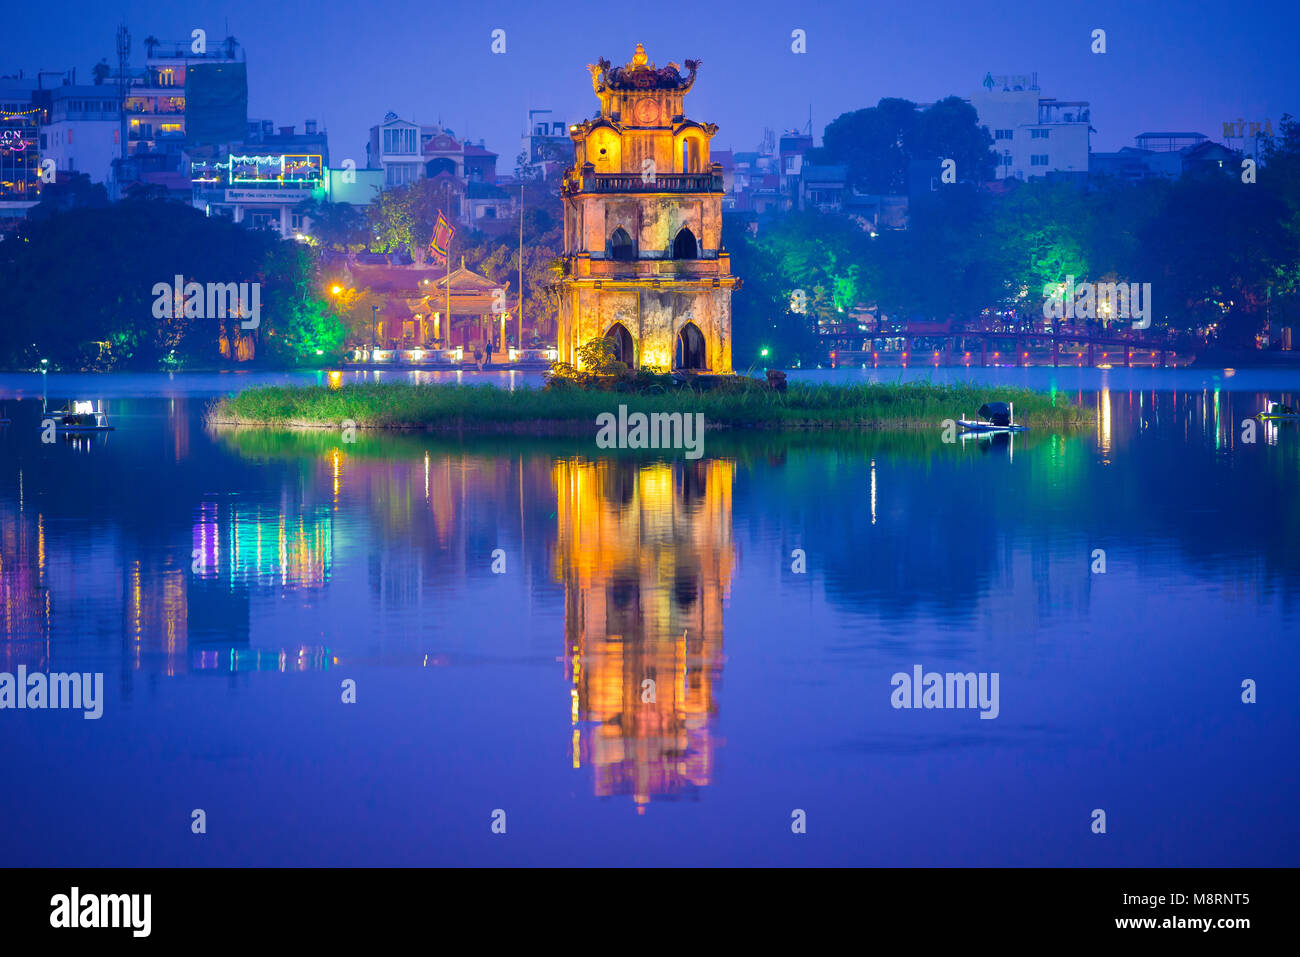 Hanoi lake, view at dusk of the historic pavilion on Hoan Kiem Lake in central Hanoi known as the Tortoise - or - Stock Image